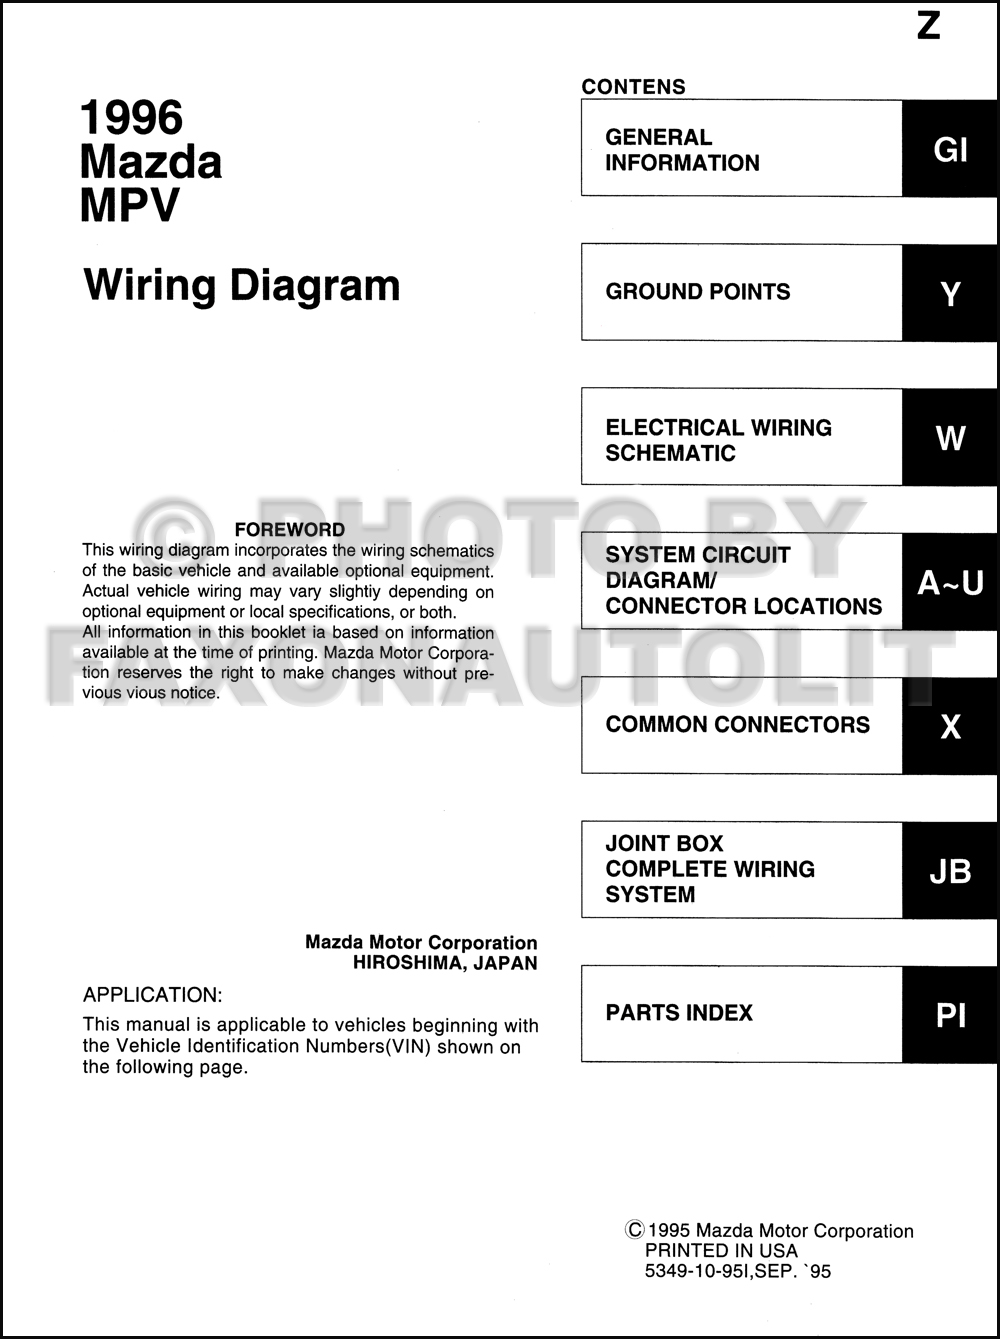 1996 Mazda Mpv Wiring Diagram Another Blog About Equipment Electrical Schematic Manual Original Rh Faxonautoliterature Com